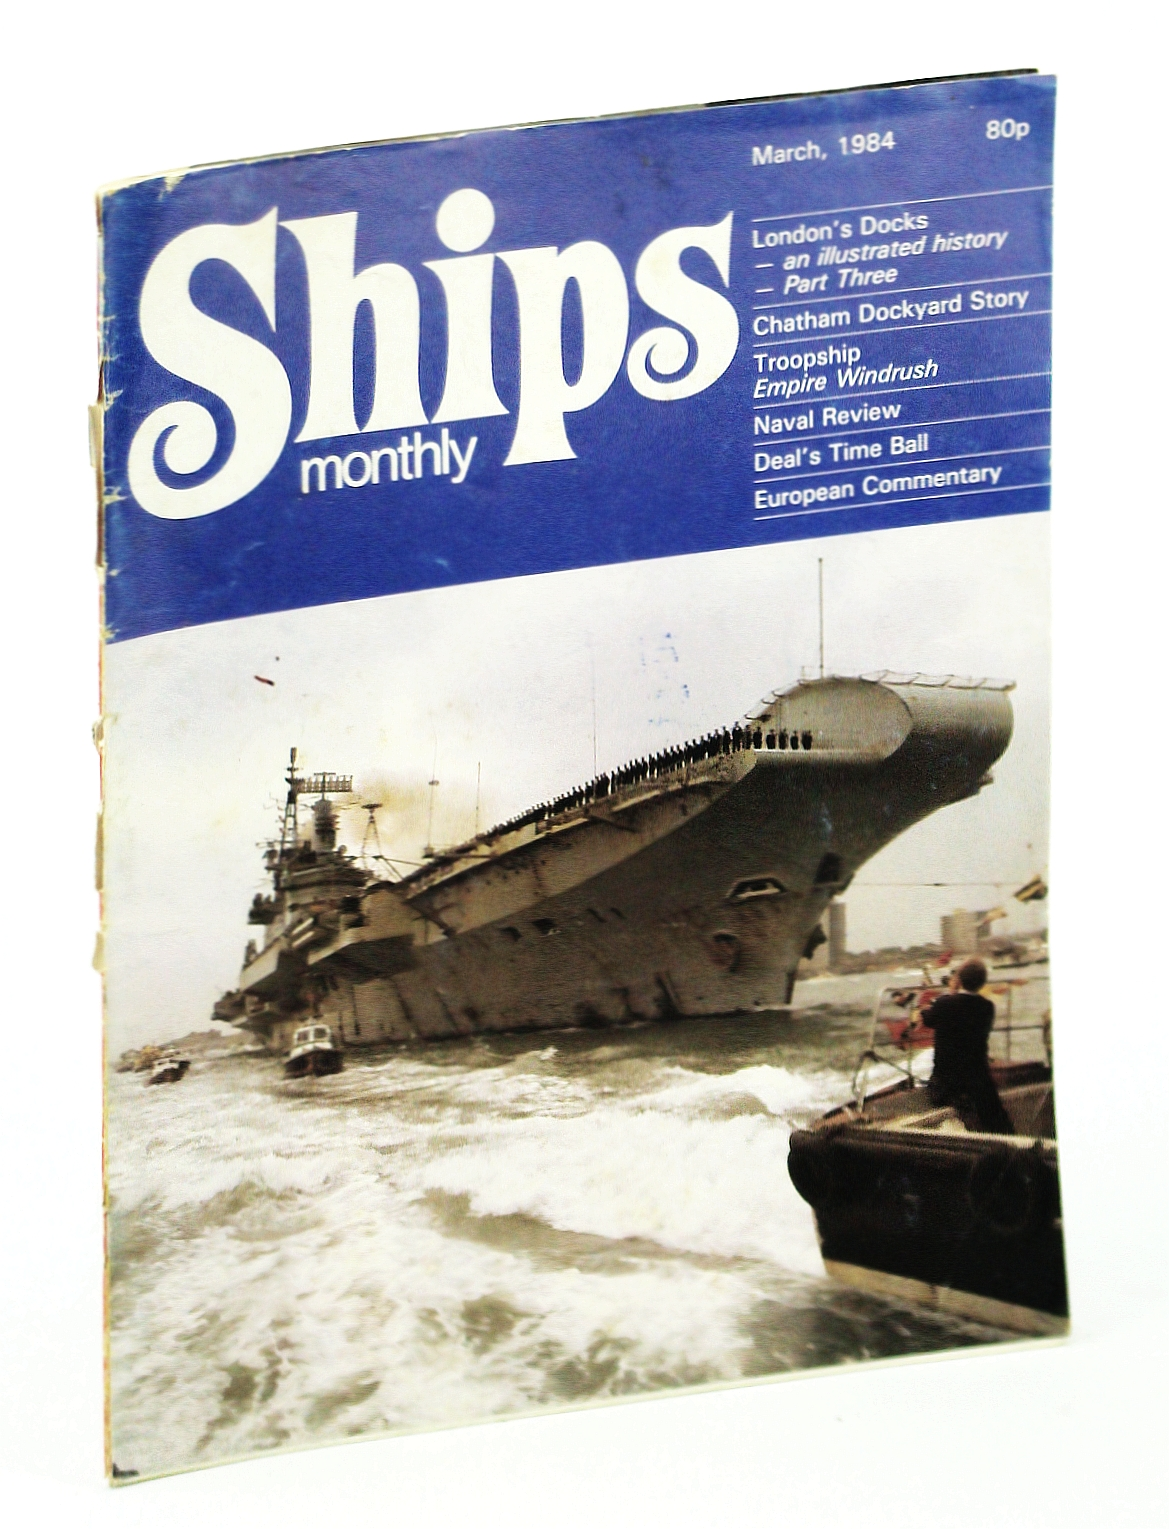 Image for Ships Monthly - The Magazine for Shiplovers Ashore and Afloat, March 1984 - The Chatham Dockyard Story